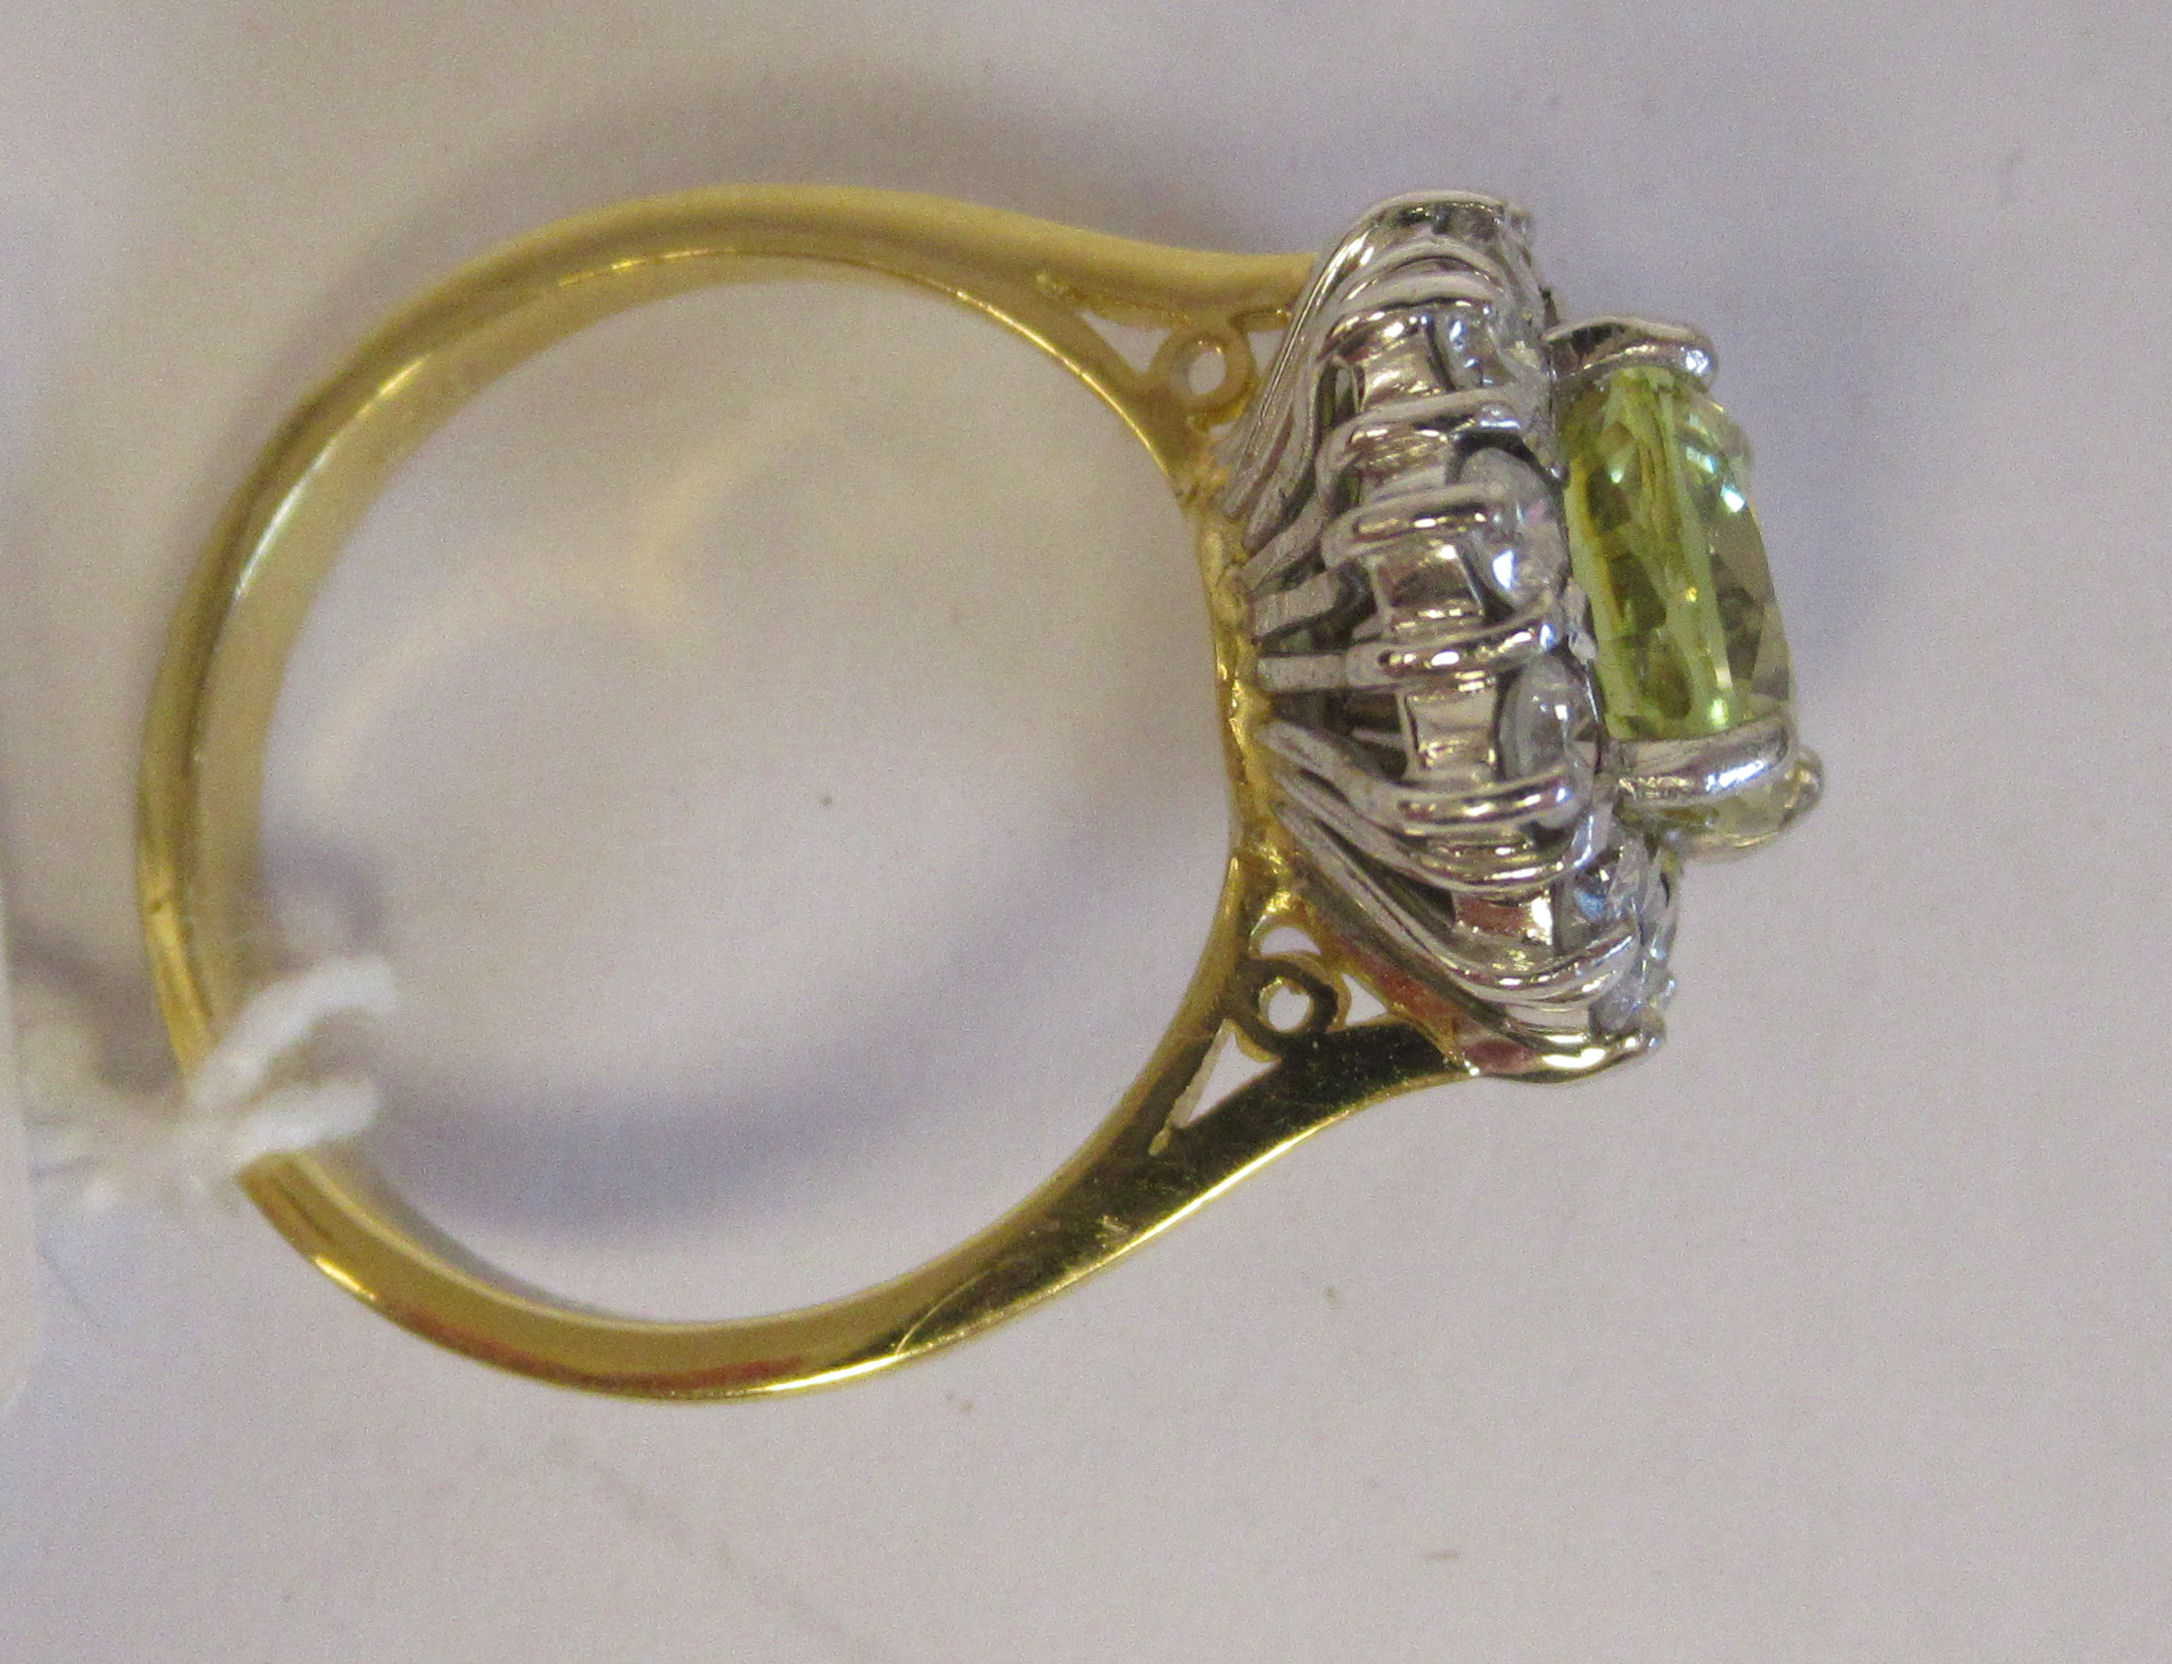 An 18ct gold cluster ring, claw set with a mild yellow Ceylon sapphire, set within a twelve stone - Image 3 of 3